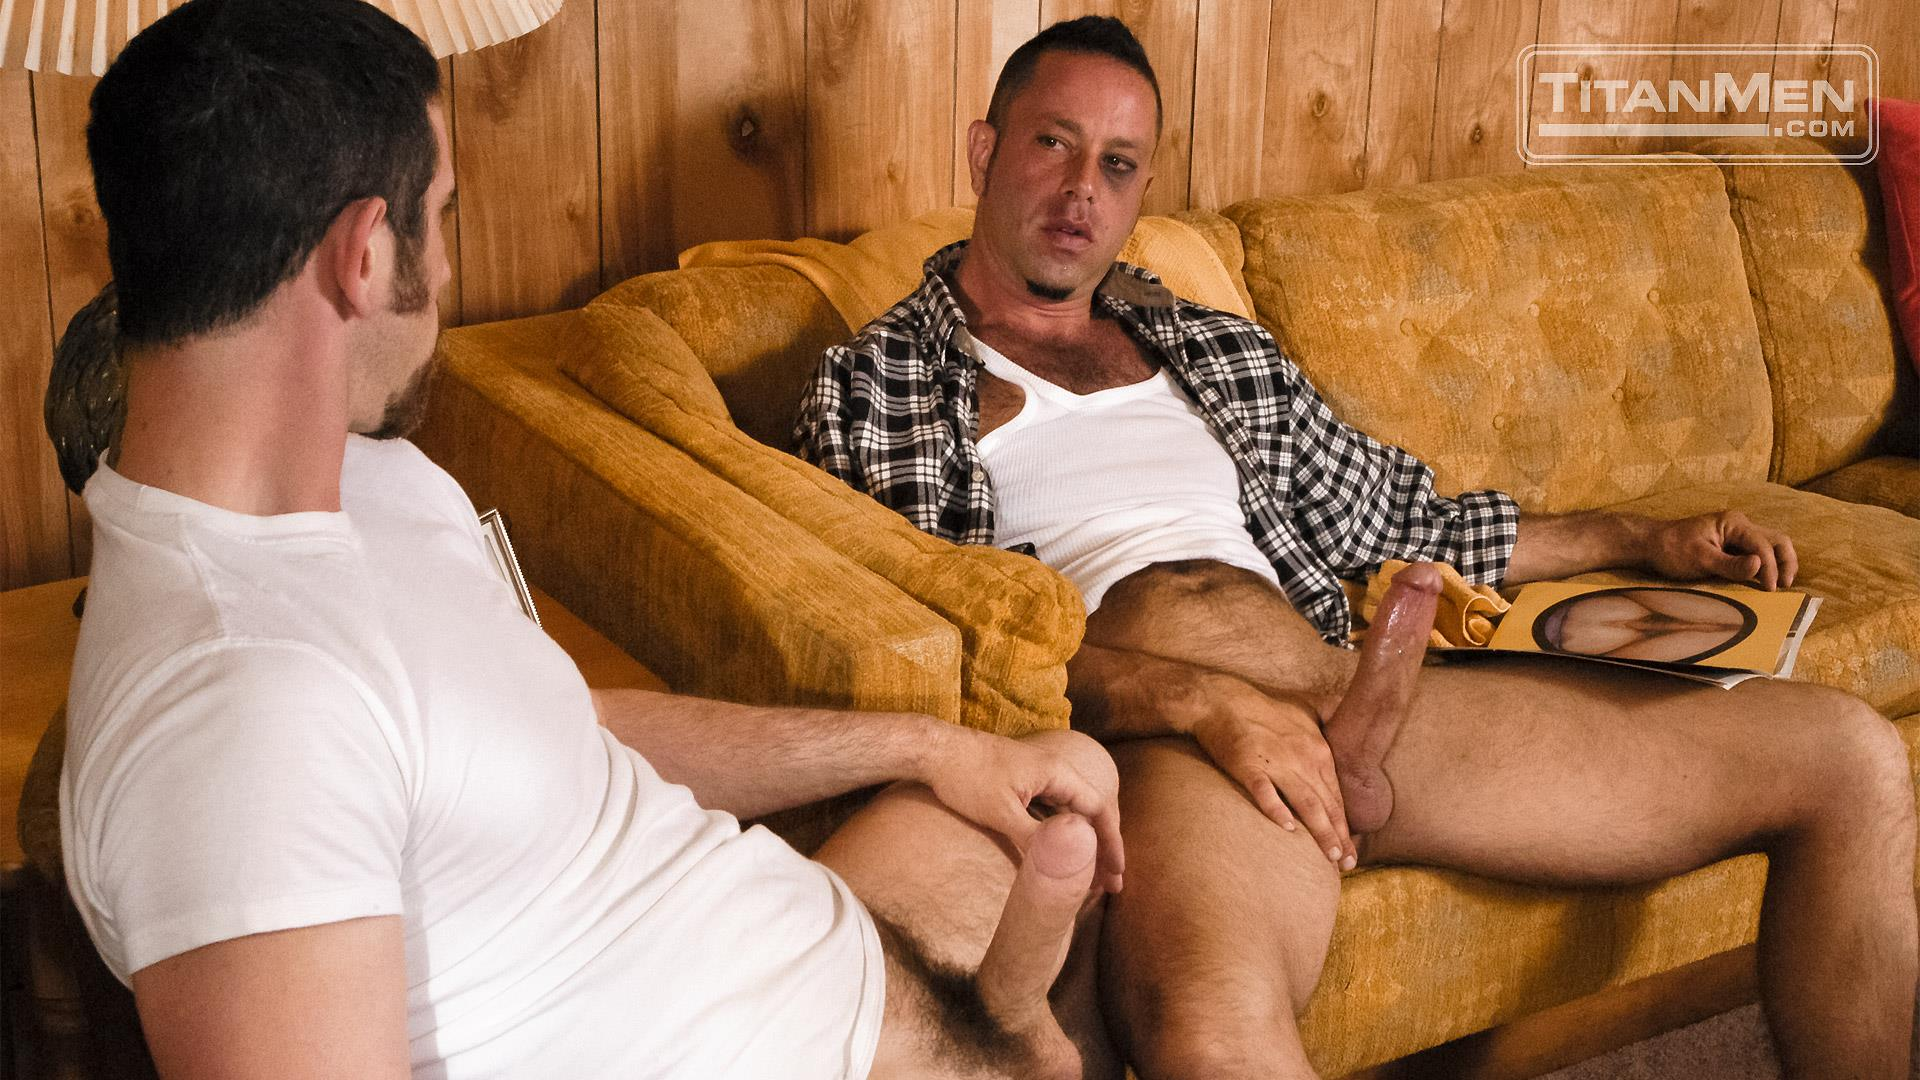 TitanMen Joe Gage Rednecks With Big Cocks Amateur Gay Porn 39 Big Cock Rednecks From TitanMen and Joe Gage